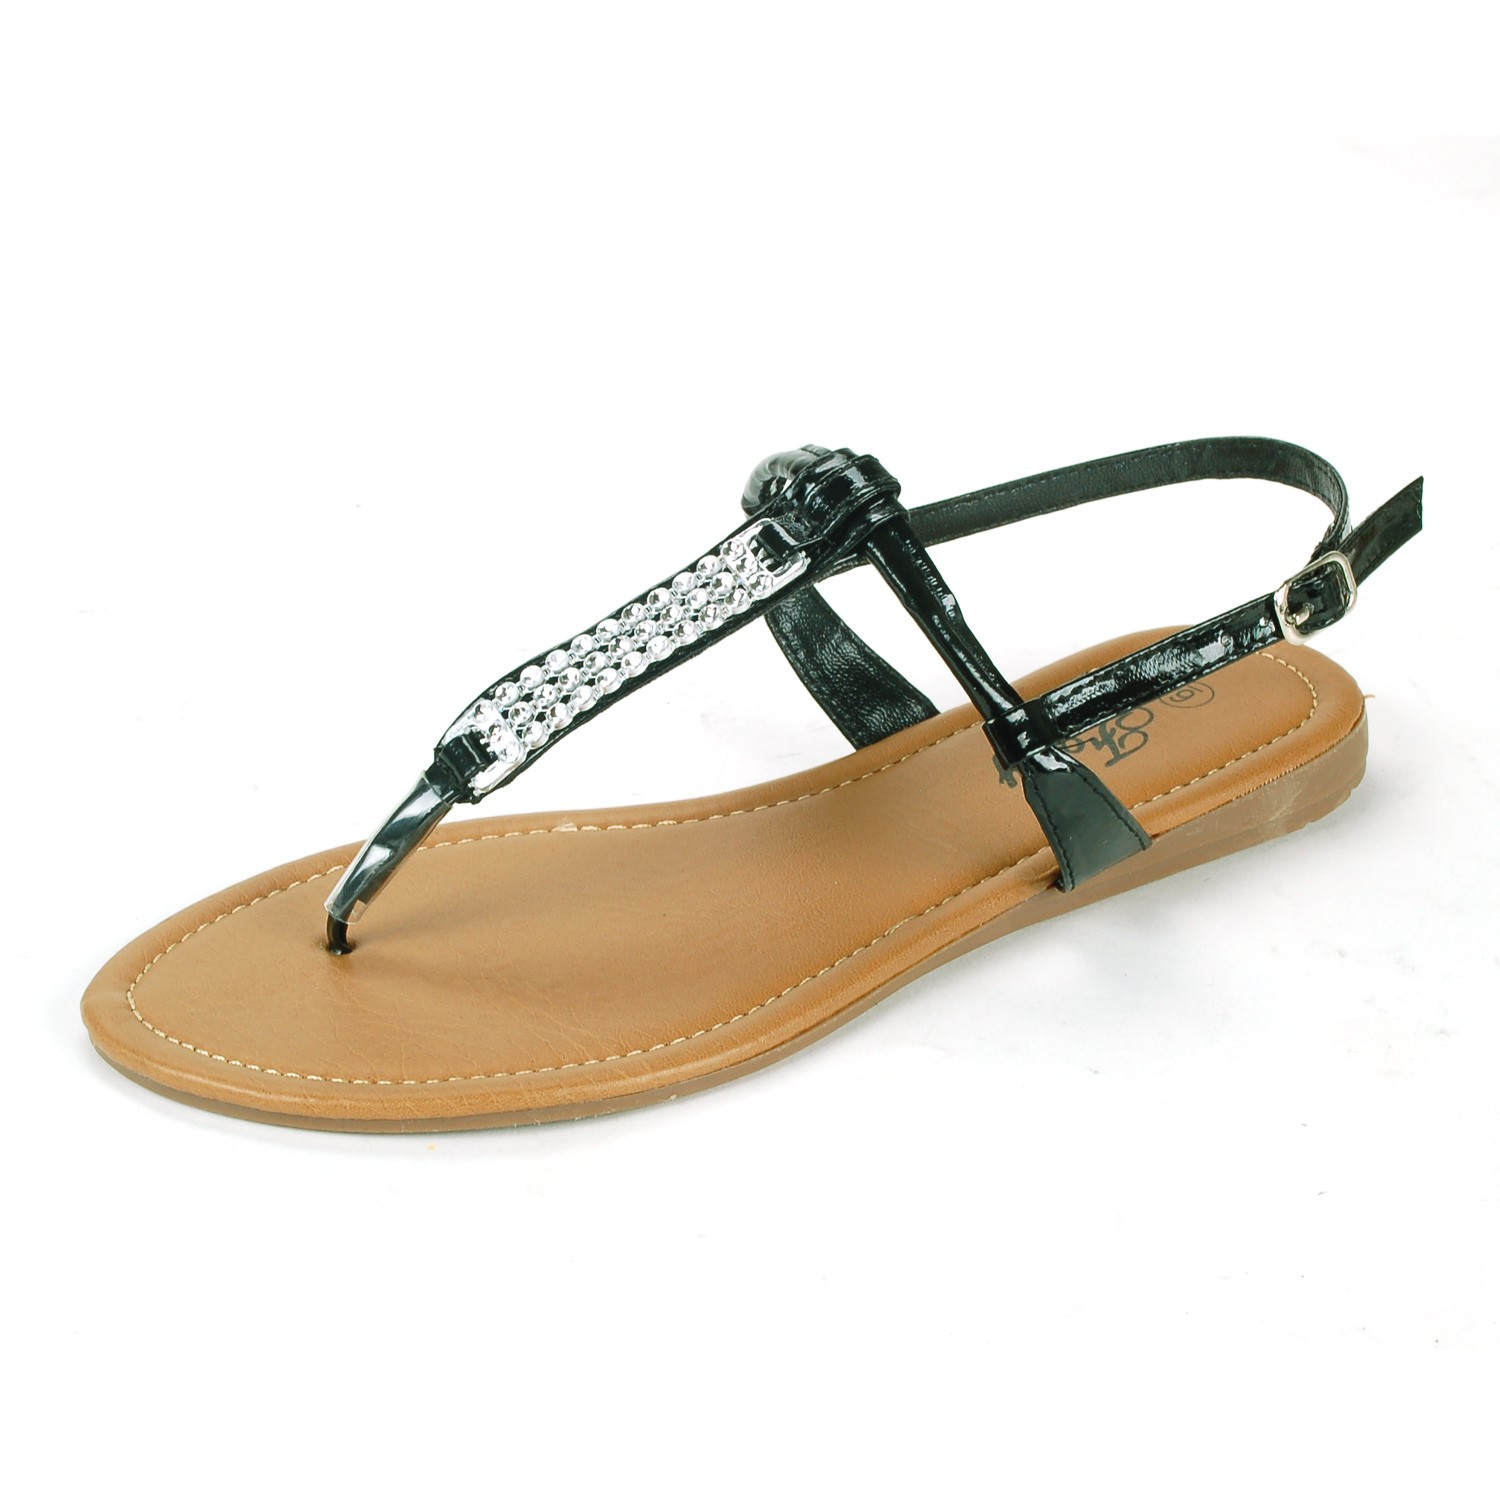 Shop women's flat sandals and flip-flops, lace-up sandals, espadrilles, platform sandals and more. Free shipping and in-store returns.